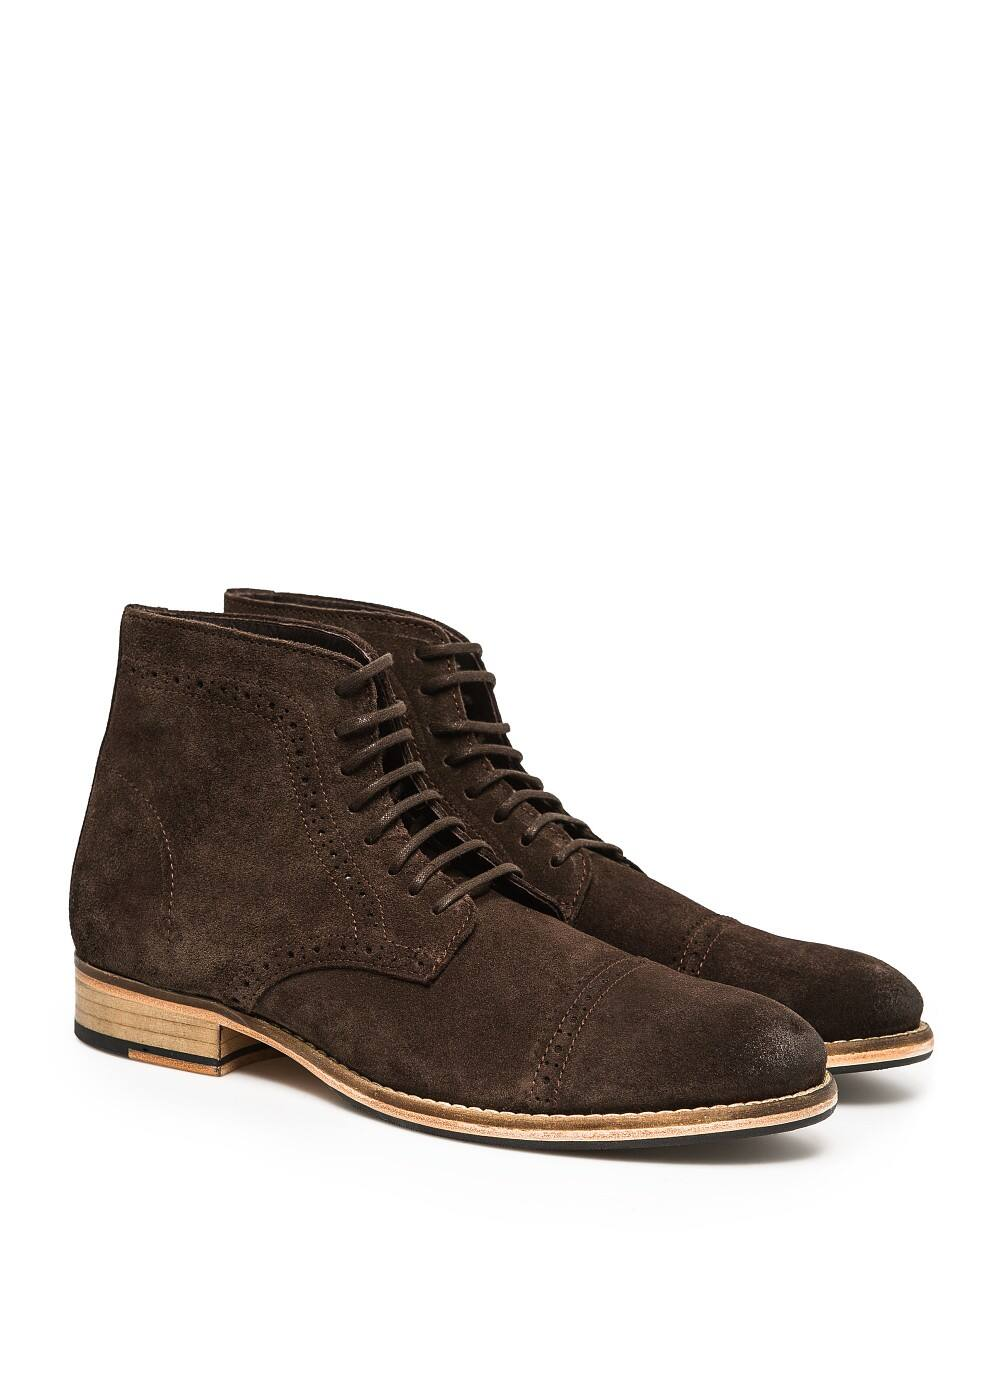 Brogueing suede ankle boots